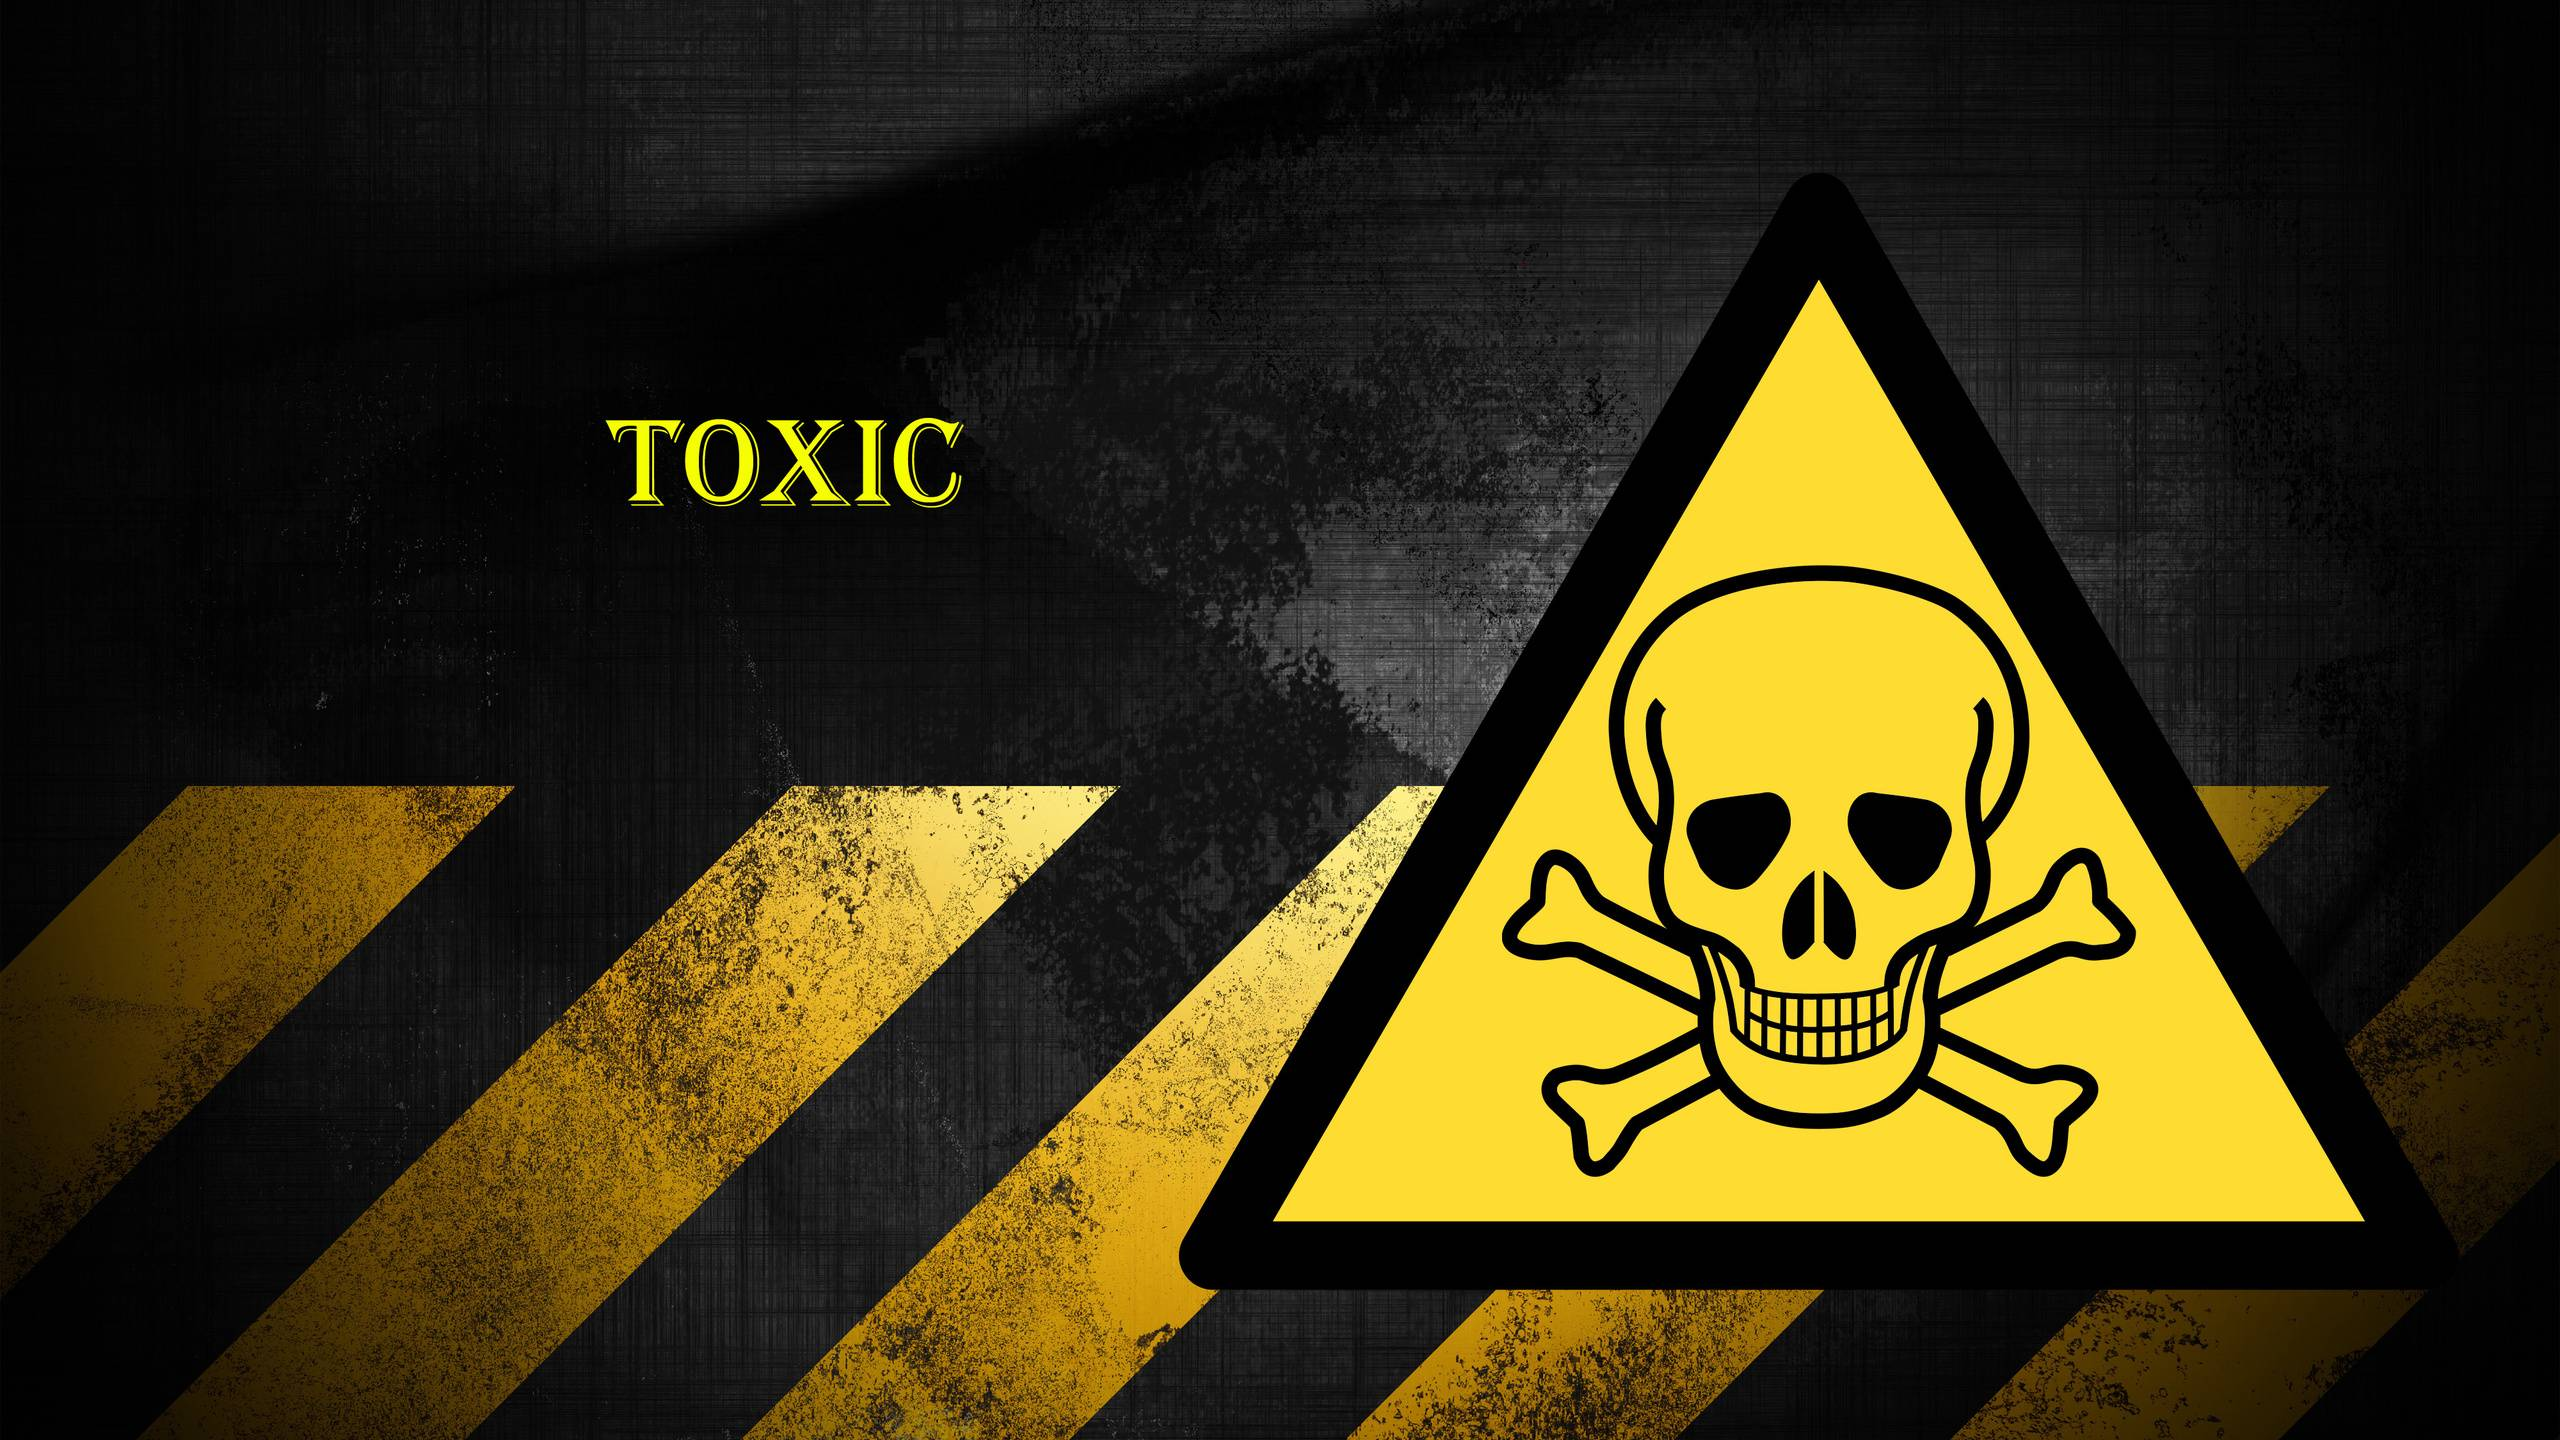 Pictures of toxic signs How to Show In Finder the Original File in Photos App